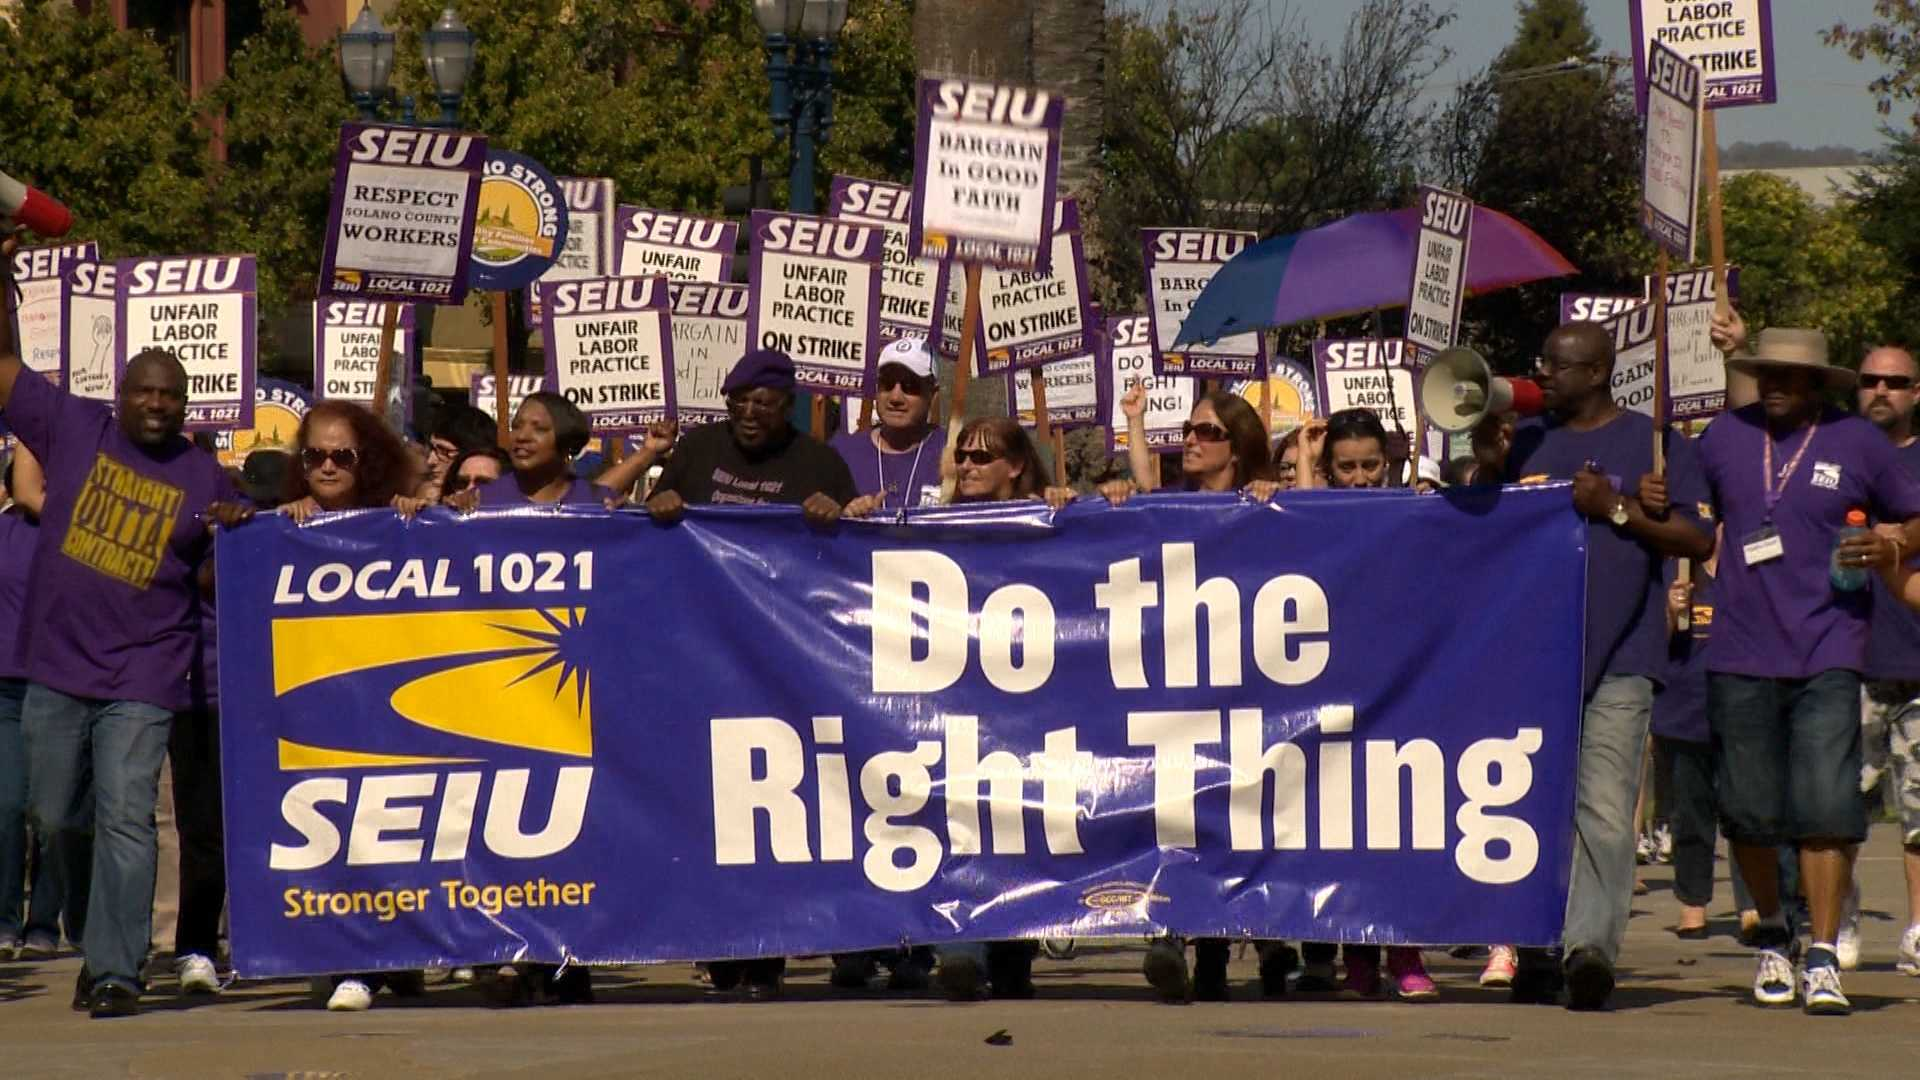 Between 700 to 1,000 Solano County employees went on strike on Wednesday, Oct. 14, 2015, and marched to the county administration building in Fairfield.